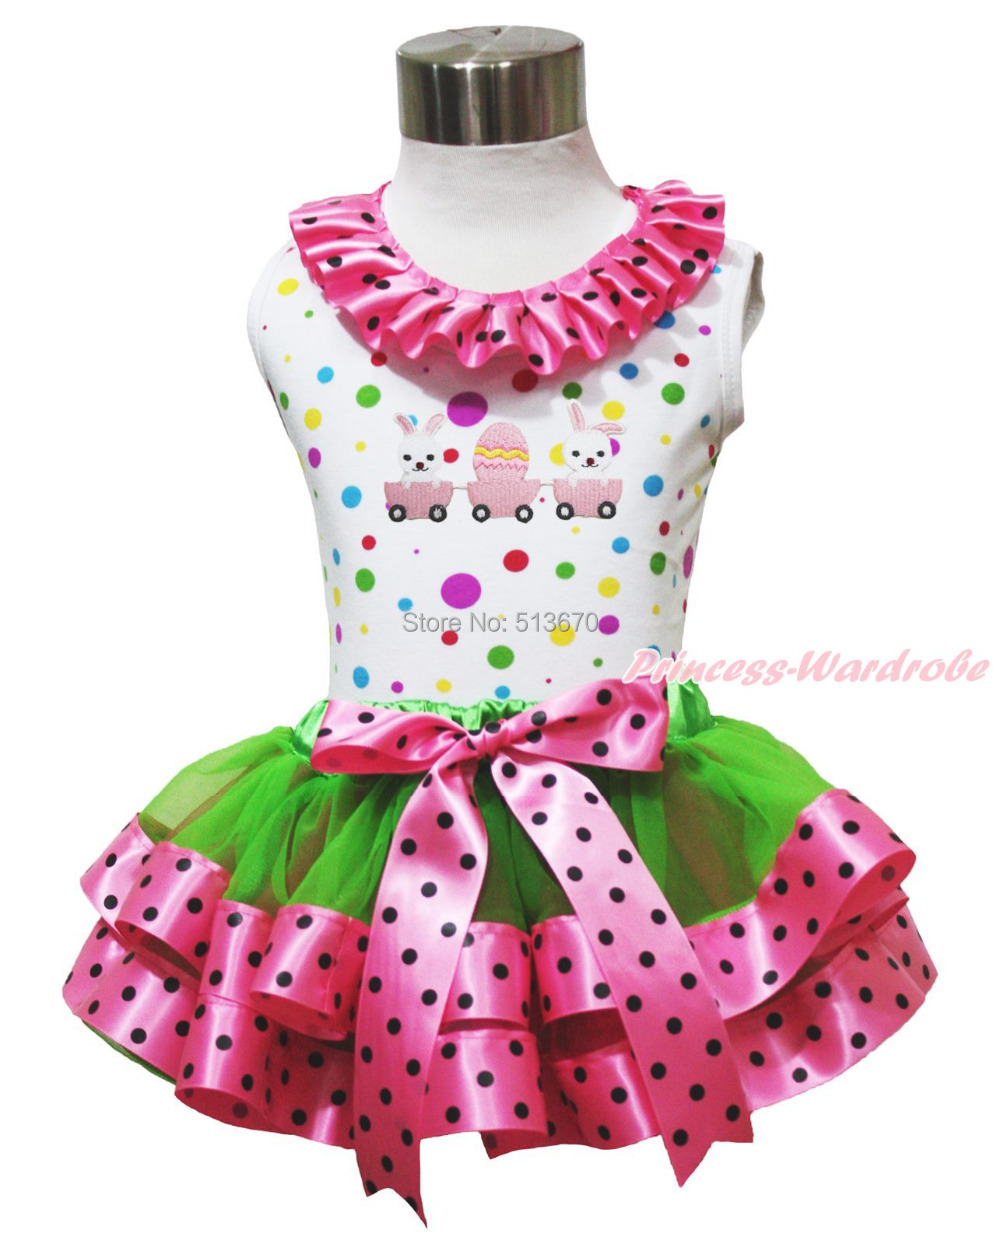 Easter Egg Bunny Rabbit Train White Rainbow Top Green Hot Pink Black Dots Bows Satin Trim Girl Skirt Outfit 1-8Y MAPSA0511<br>